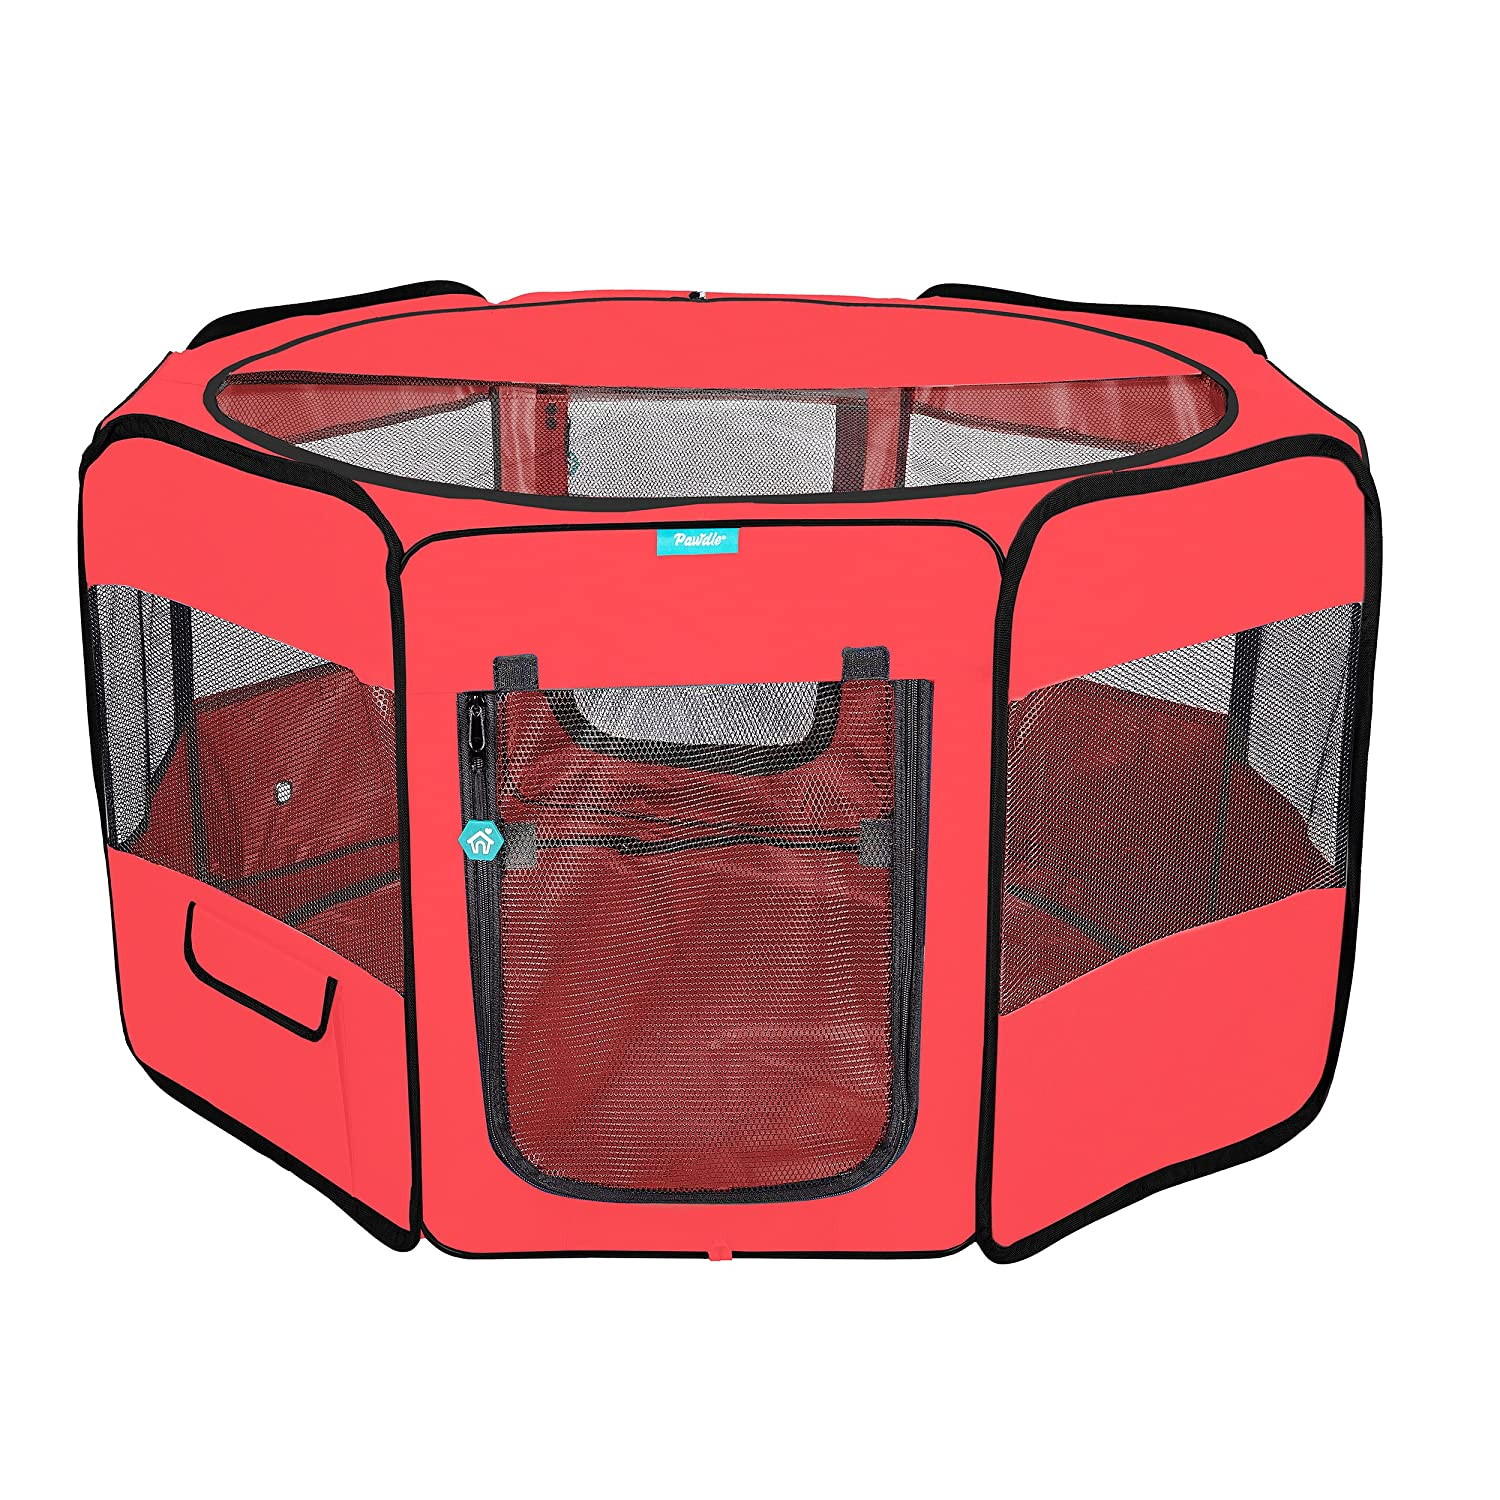 Red L Red L DELUXE PREMIUM Pet Dog Playpen Portable Soft Dog Exercise Pen Kennel with Carry Bag for Dogs, Cats, Kittens, and all Pets (Large, Red)